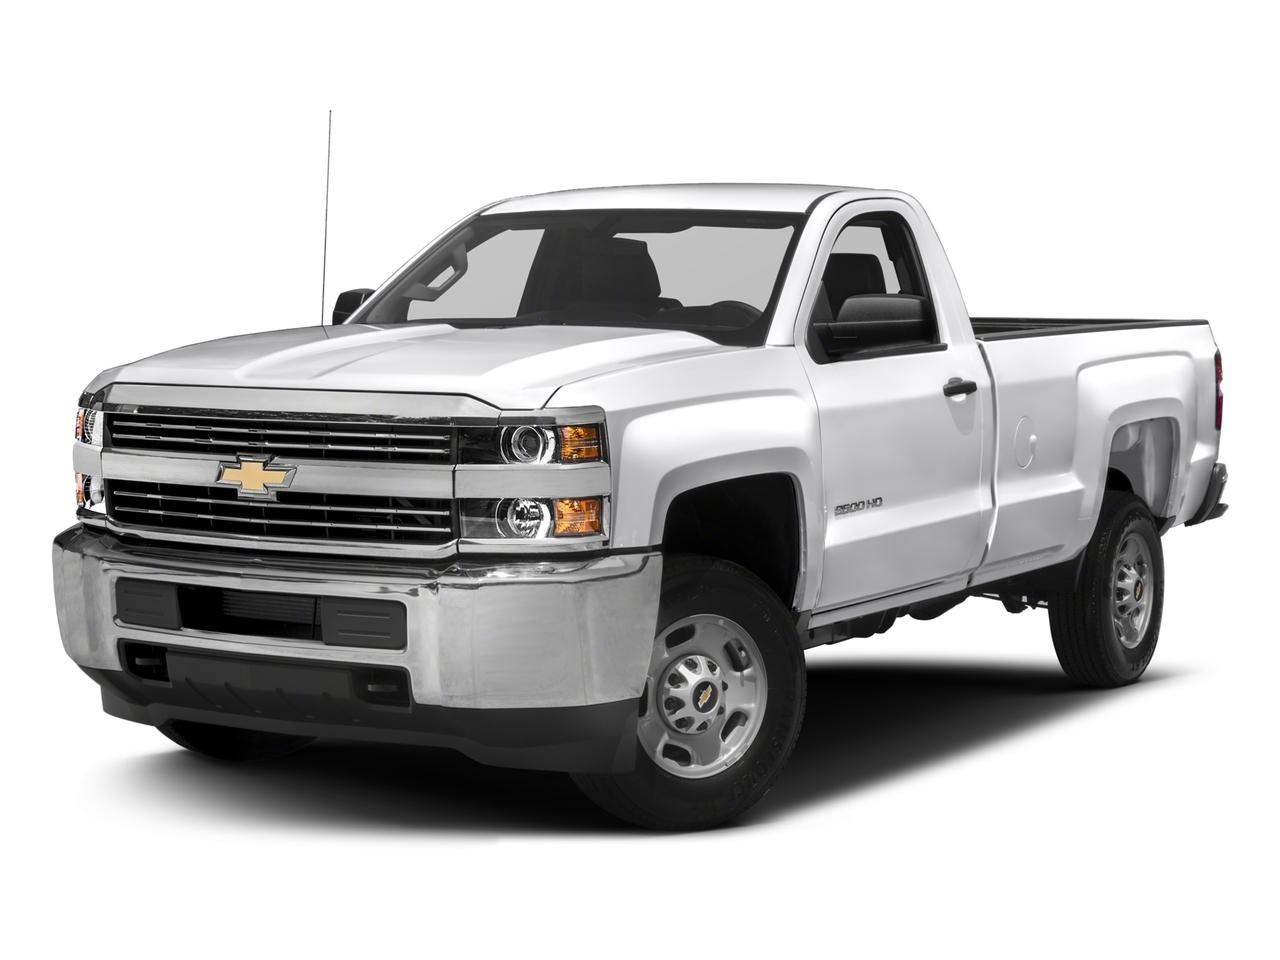 2017 Chevrolet Silverado 2500HD Vehicle Photo in Nashua, NH 03060